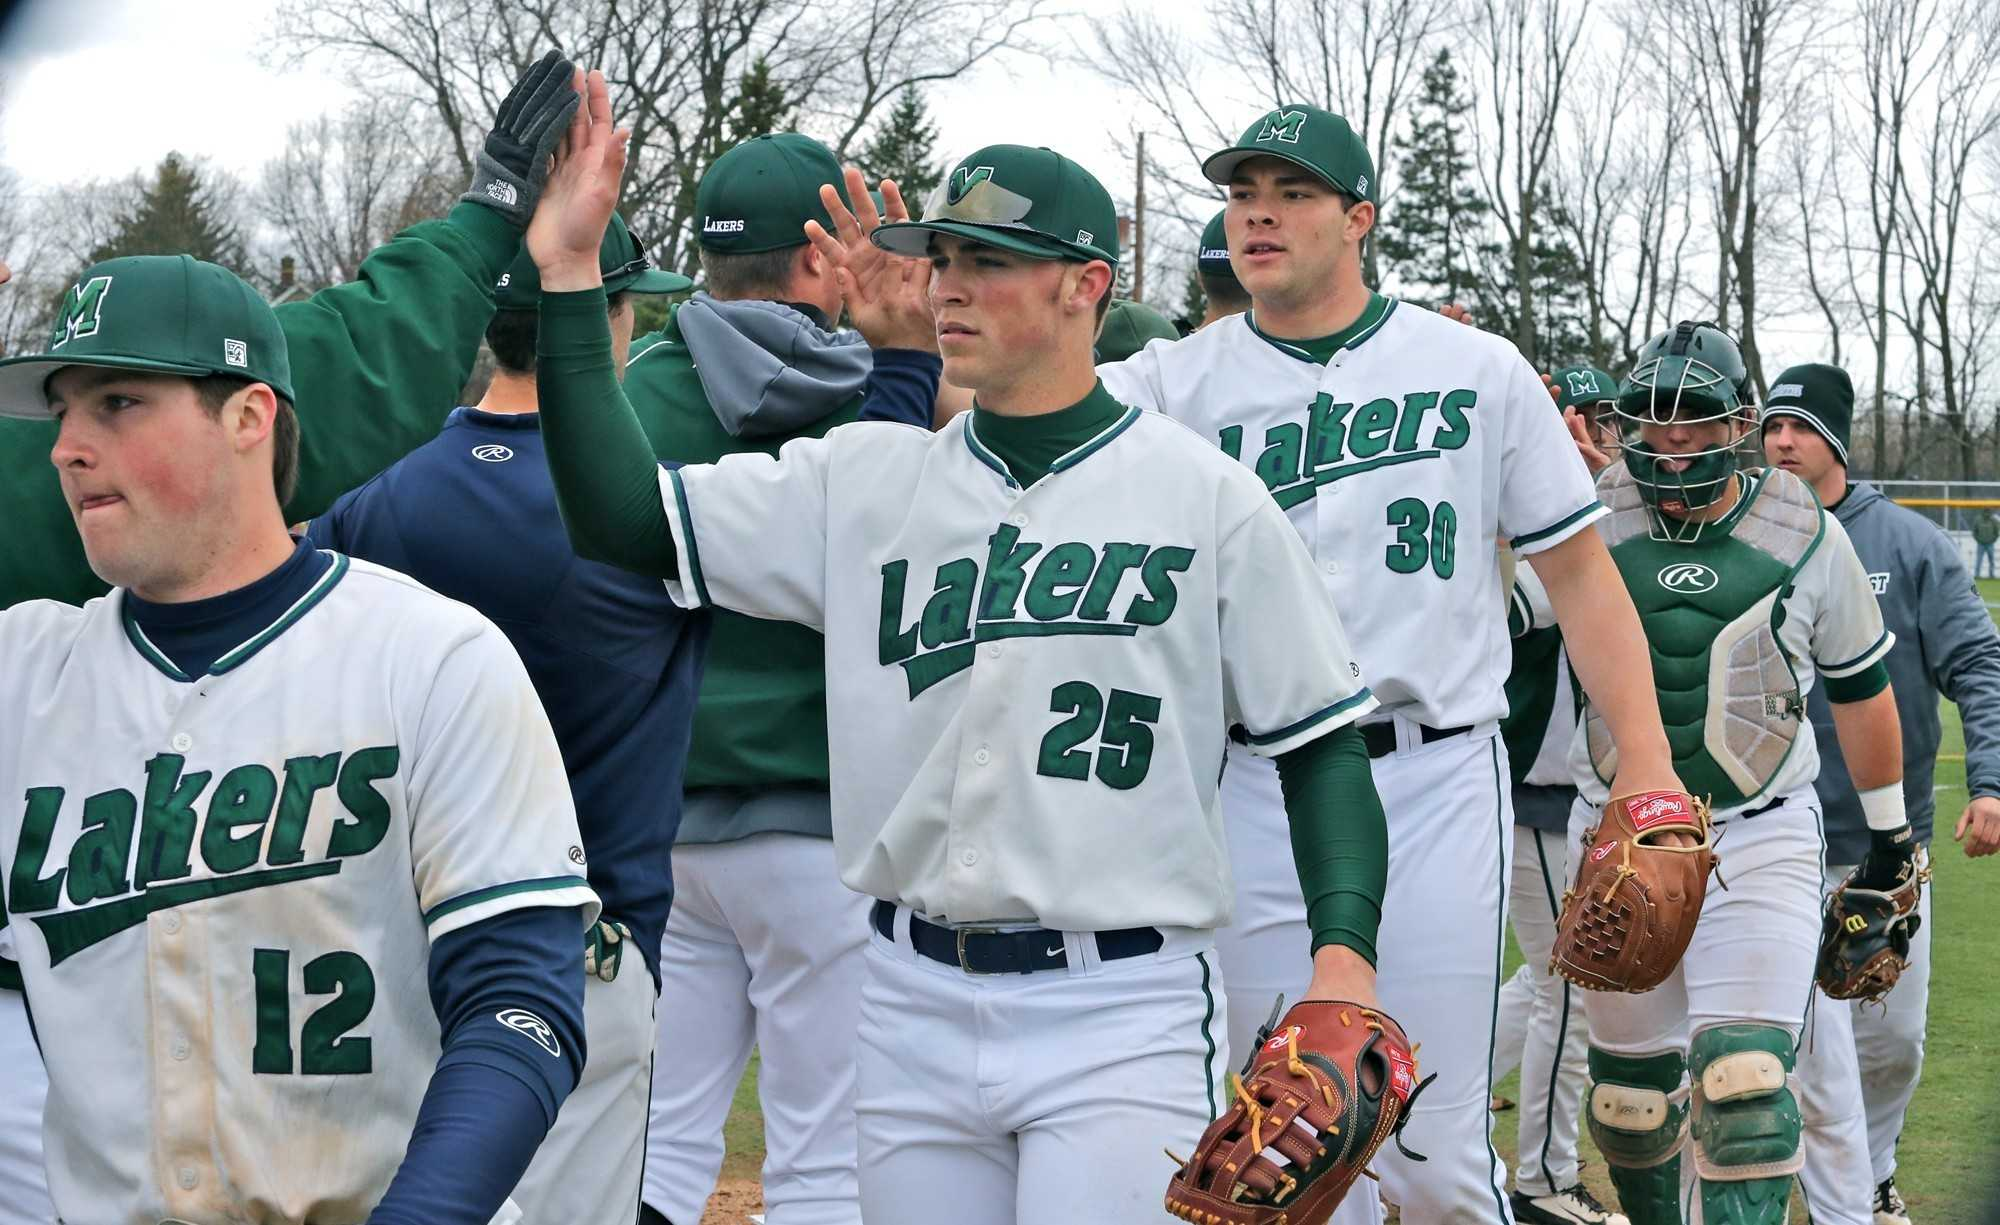 The Lakers beat Pitt-Johnstown 8-2 on Saturday, April 16. This was an important victory for Mercyhurst's momentum. They were 27-9 at that time. Players from left to right: Austin Alonge, Hank Morrison and Colin Mckee.